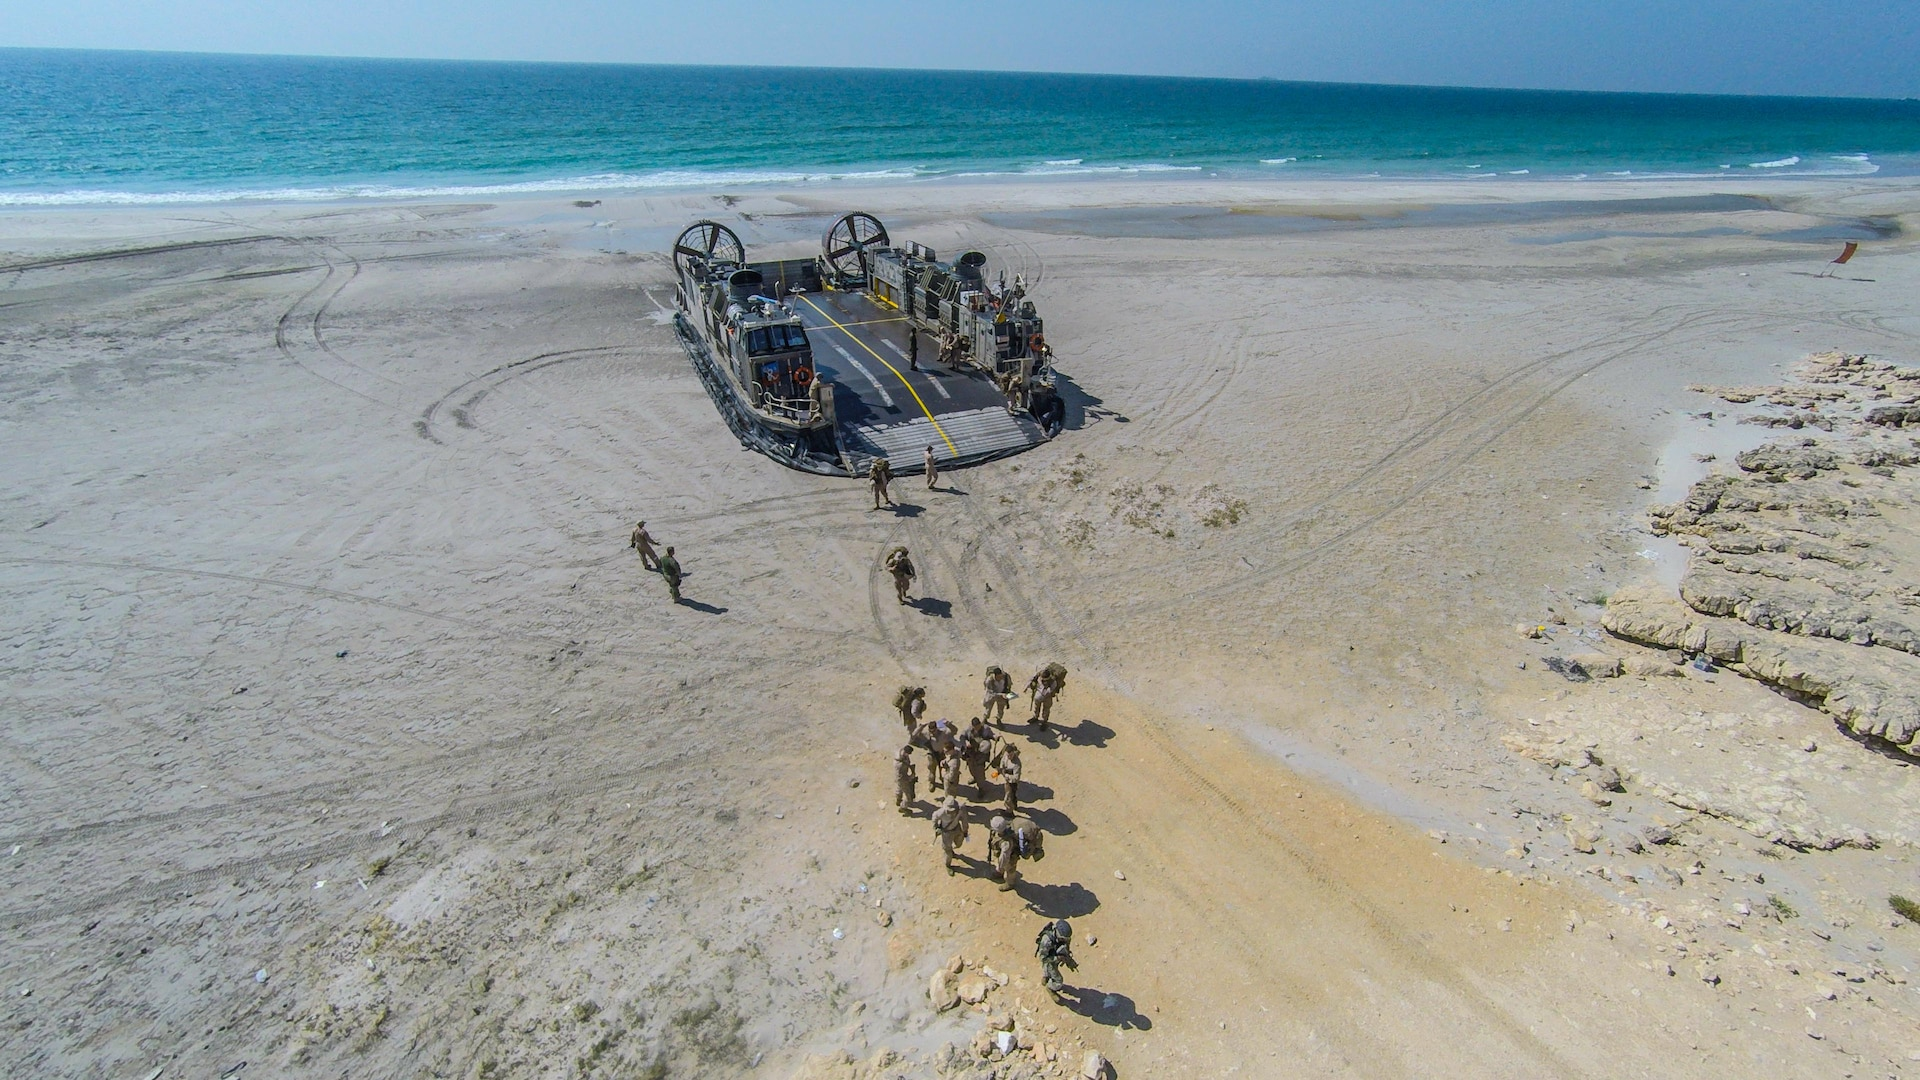 U.S. Marines and Sailors with the Makin Island Amphibious Ready Group and 11th Marine Expeditionary Unit offload from a Landing Craft Air Cushion at Senoor Beach, Oman, before the beginning of Exercise Sea Soldier, Feb. 15. Sea Soldier 2017 is an annual, bilateral exercise conducted with the Royal Army of Oman designed to demonstrate the cooperative skill and will of U.S. and partner nations to work together in maintaining regional stability and security. USS Somerset, with the embarked 11th Marine Expeditionary Unit, is deployed in the U.S. 5th Fleet area of operations in support of maritime security operations designed to reassure allies and partners, preserve the freedom of navigation and the free flow of commerce and enhance regional stability.